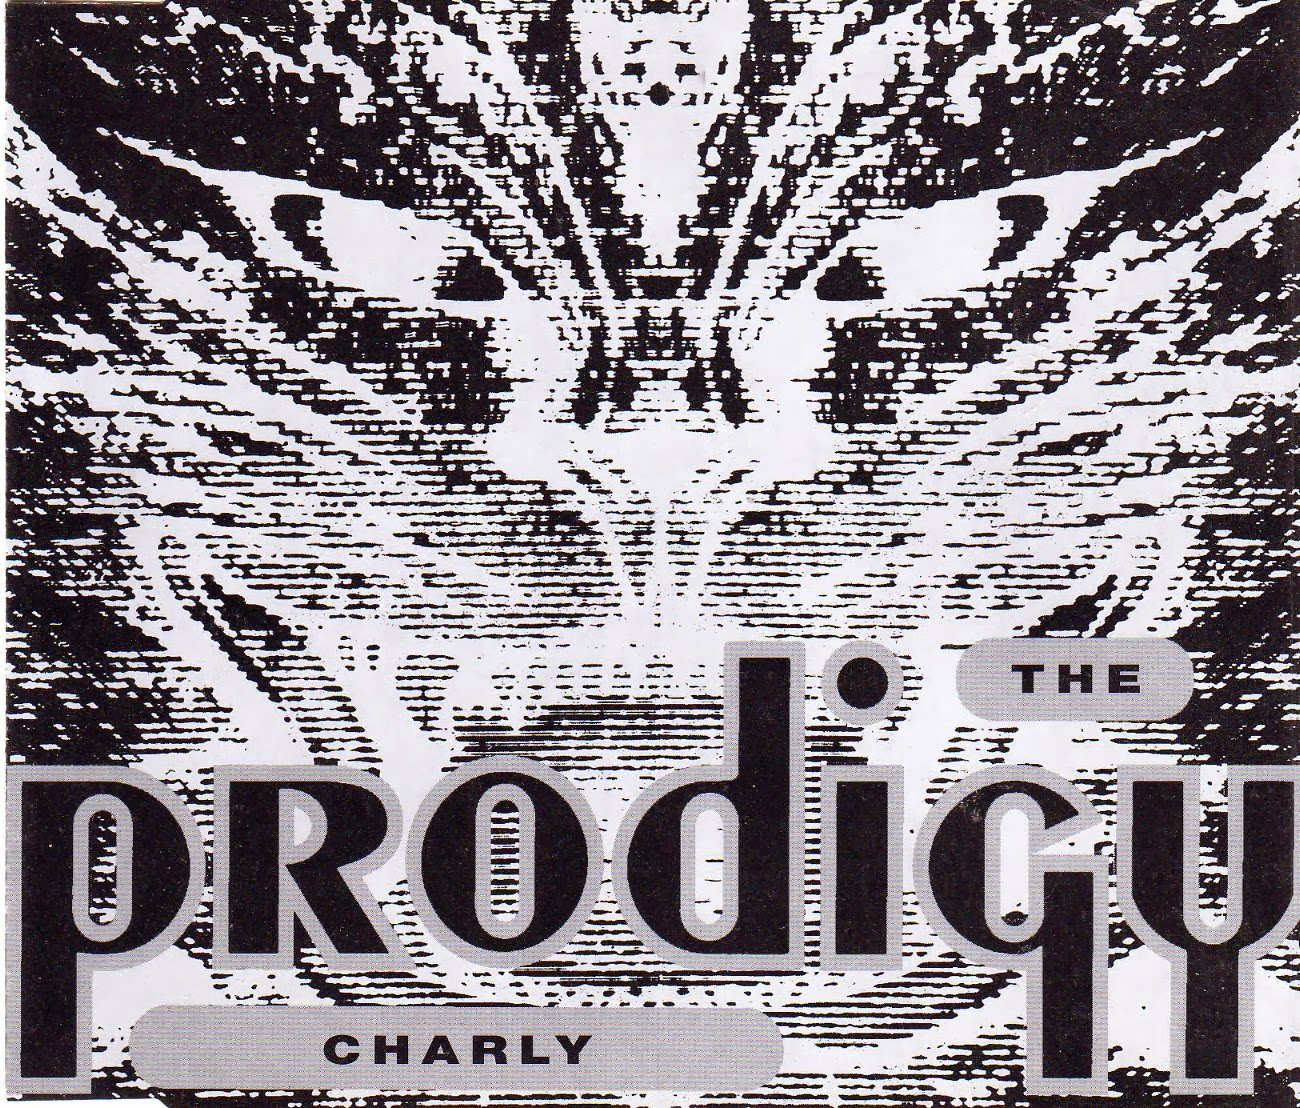 Charly, The Prodigy, Cover, Single, Song